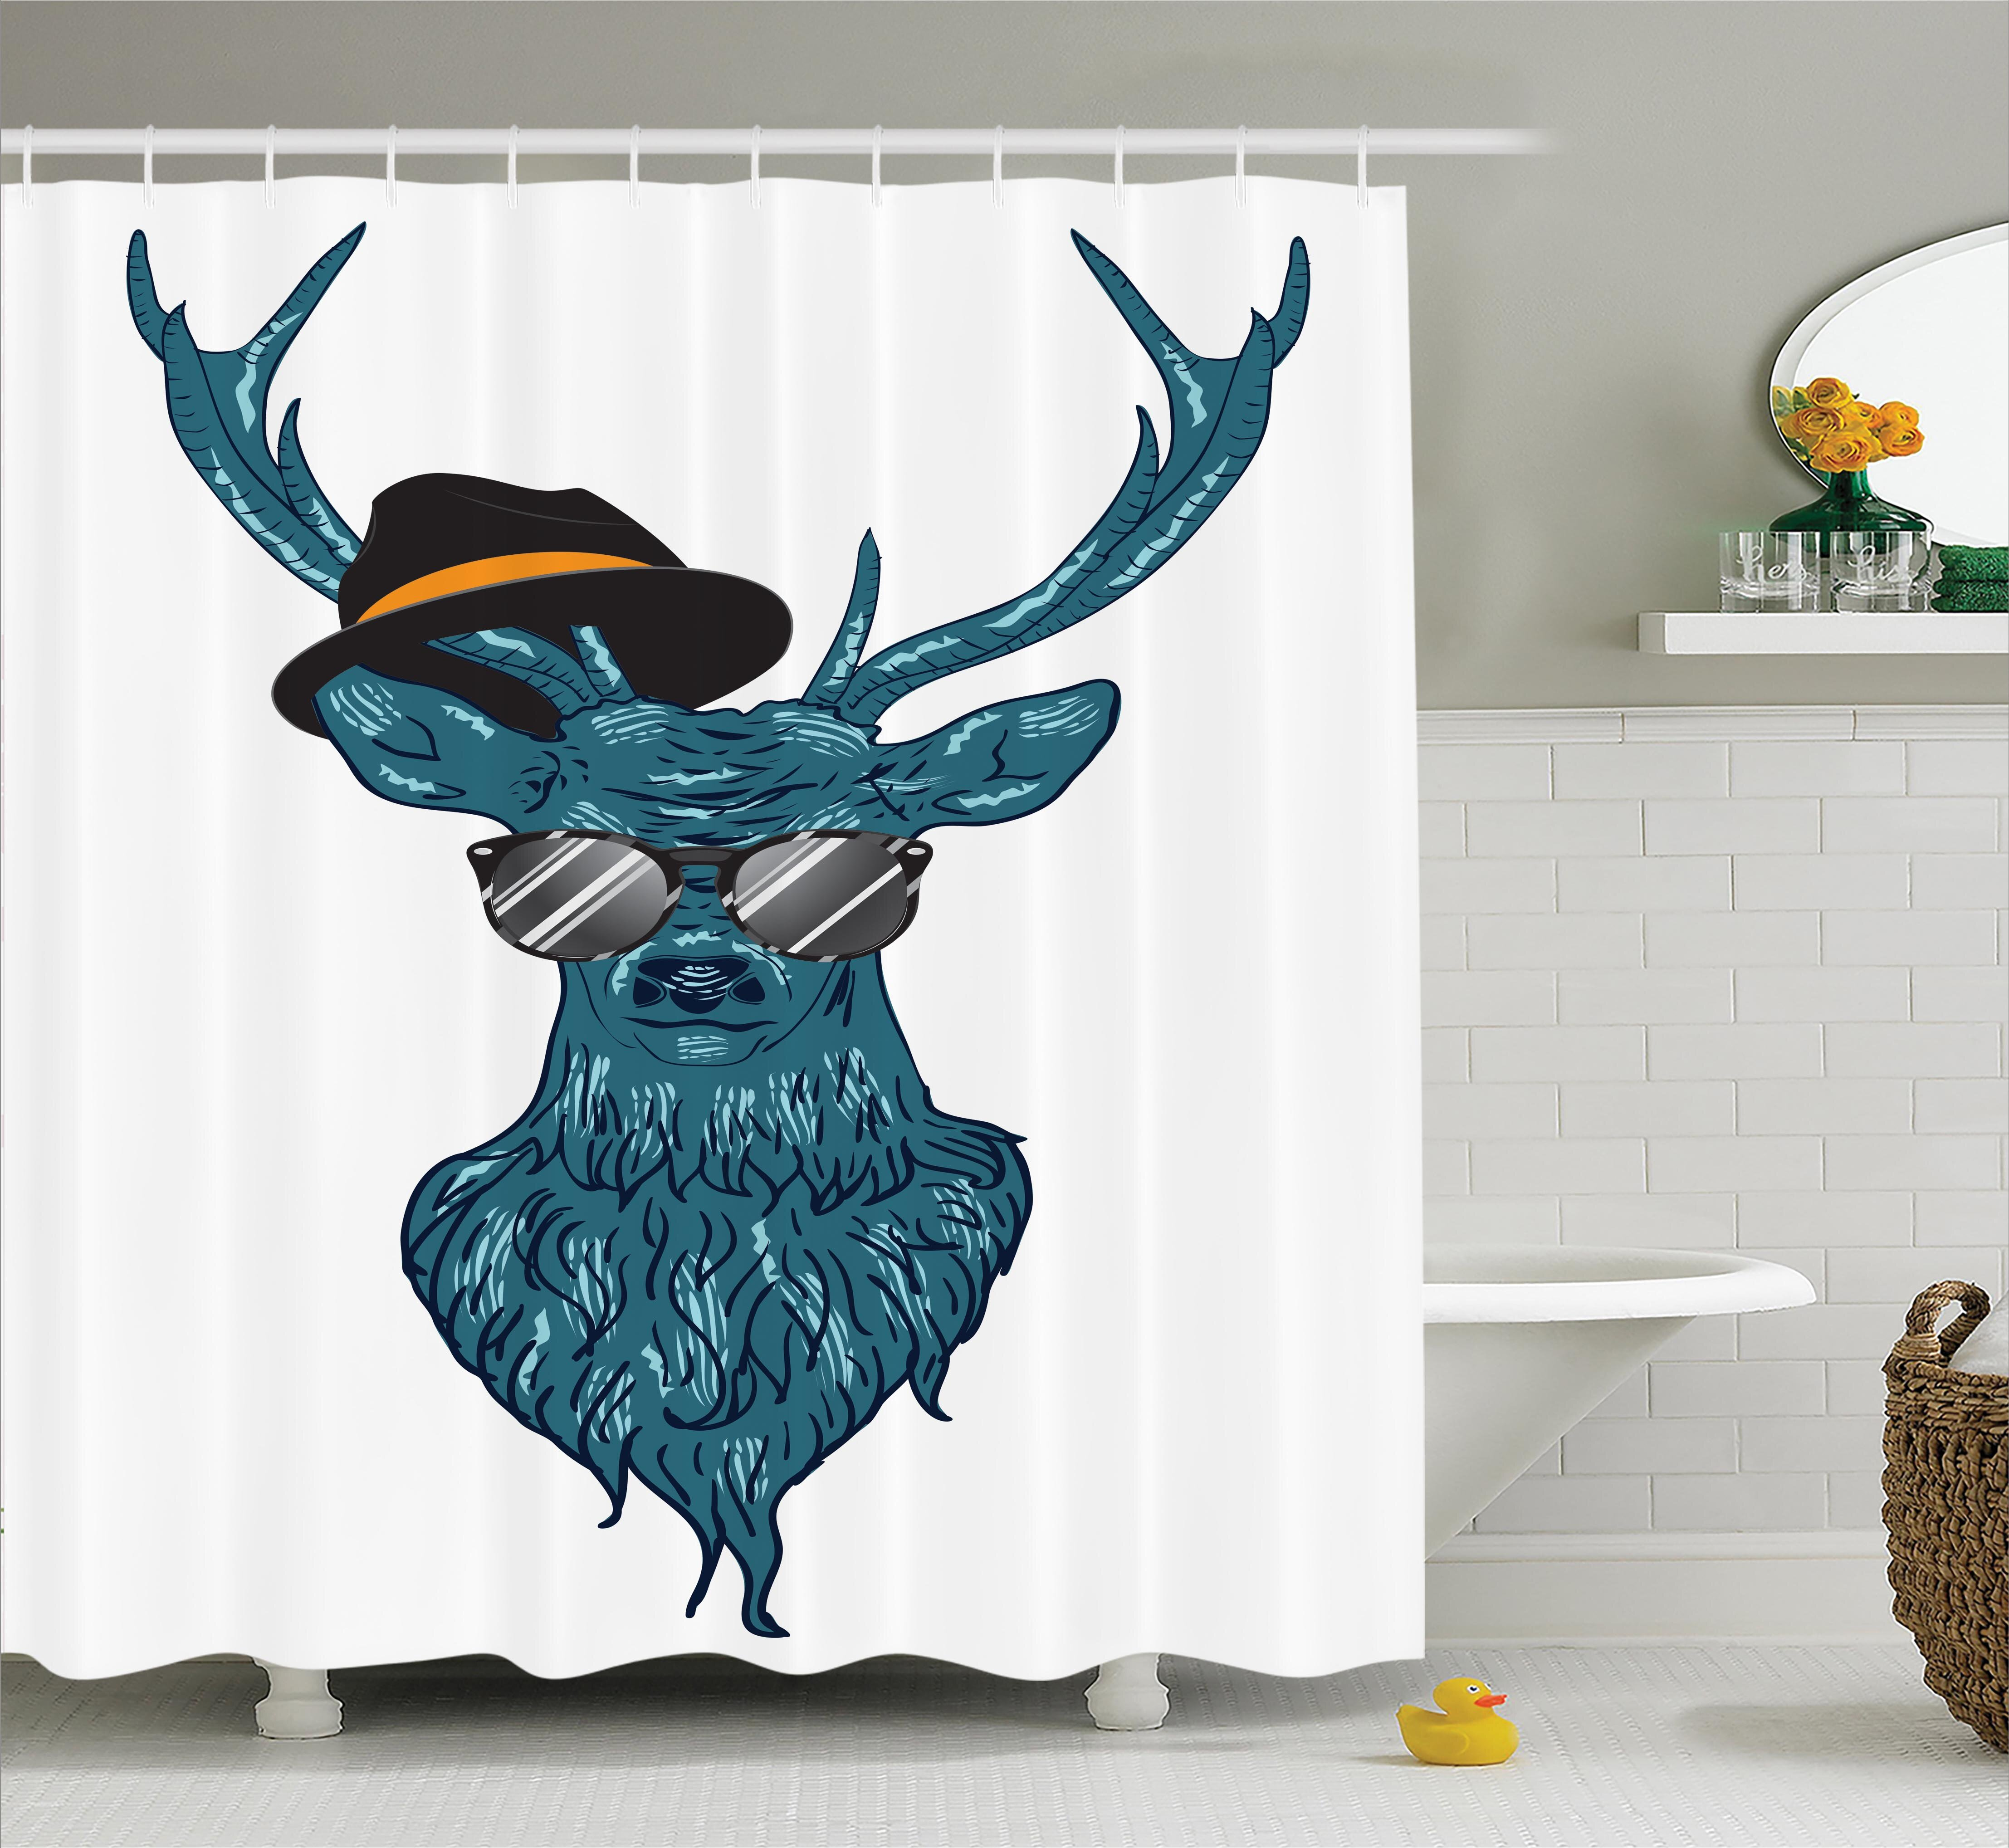 East Urban Home Hipster Shower Curtain